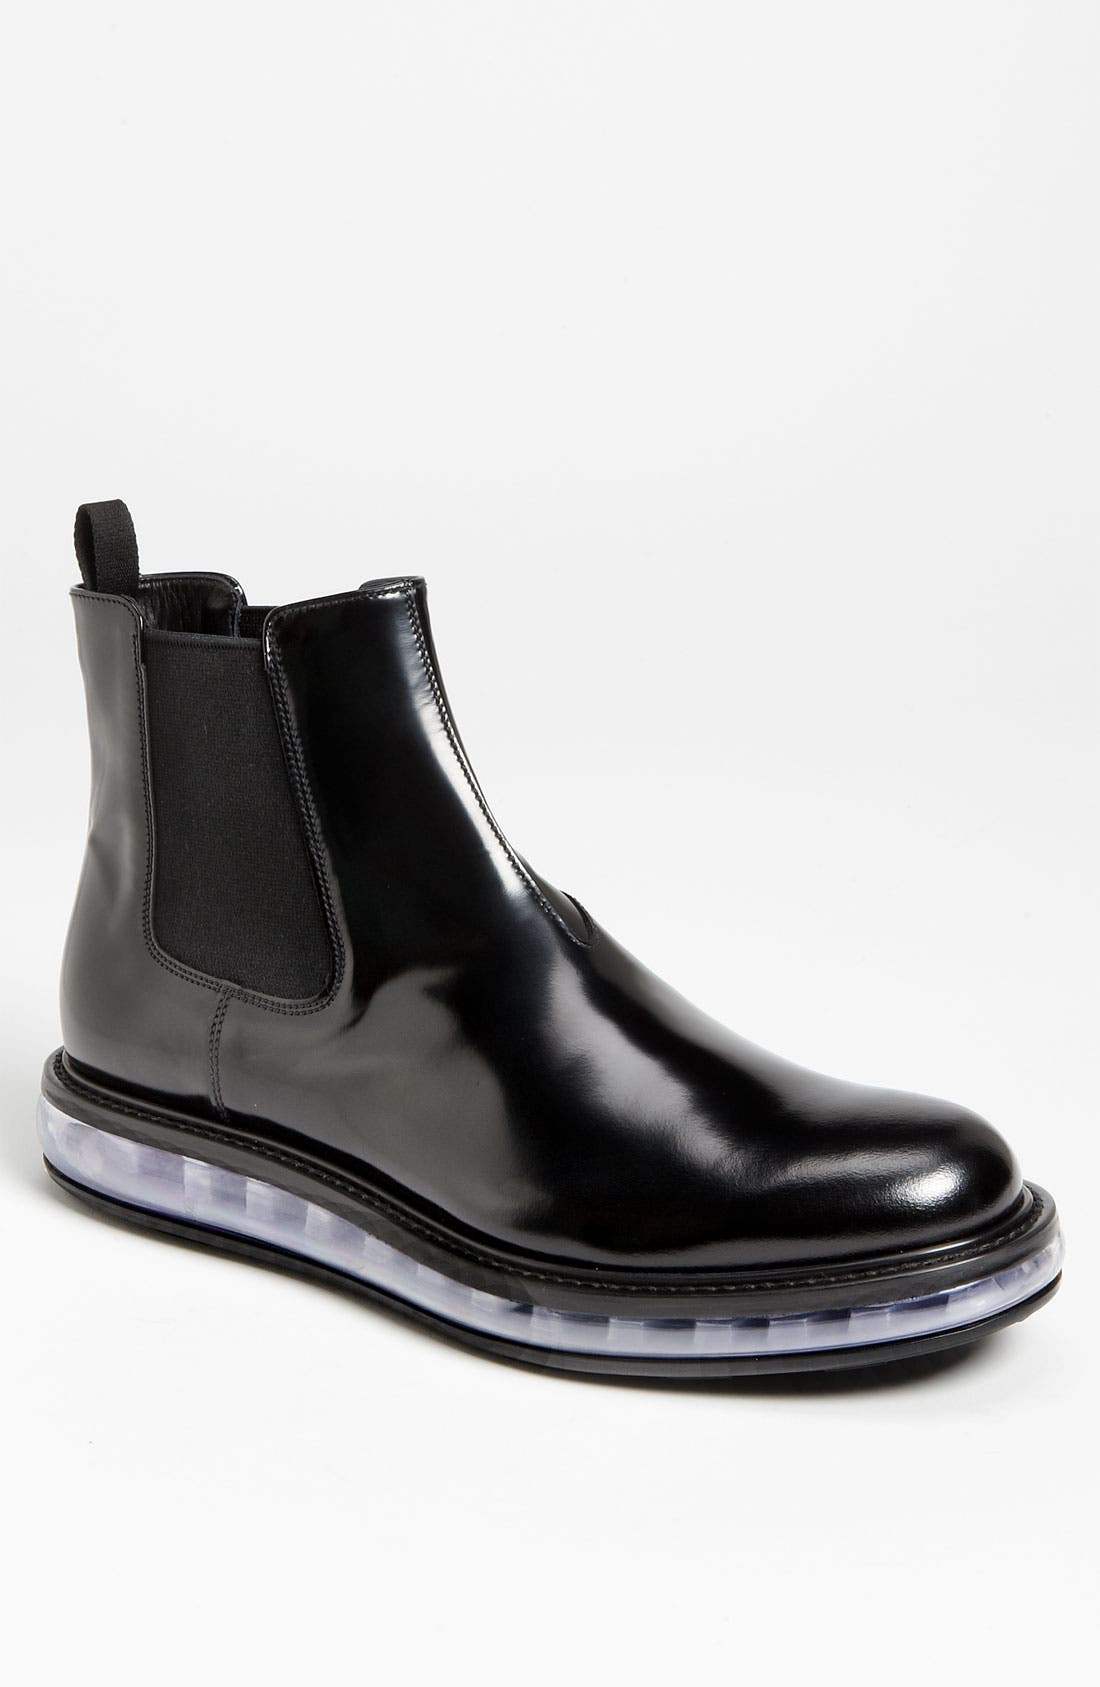 Alternate Image 1 Selected - Prada 'Levitate' Chelsea Boot